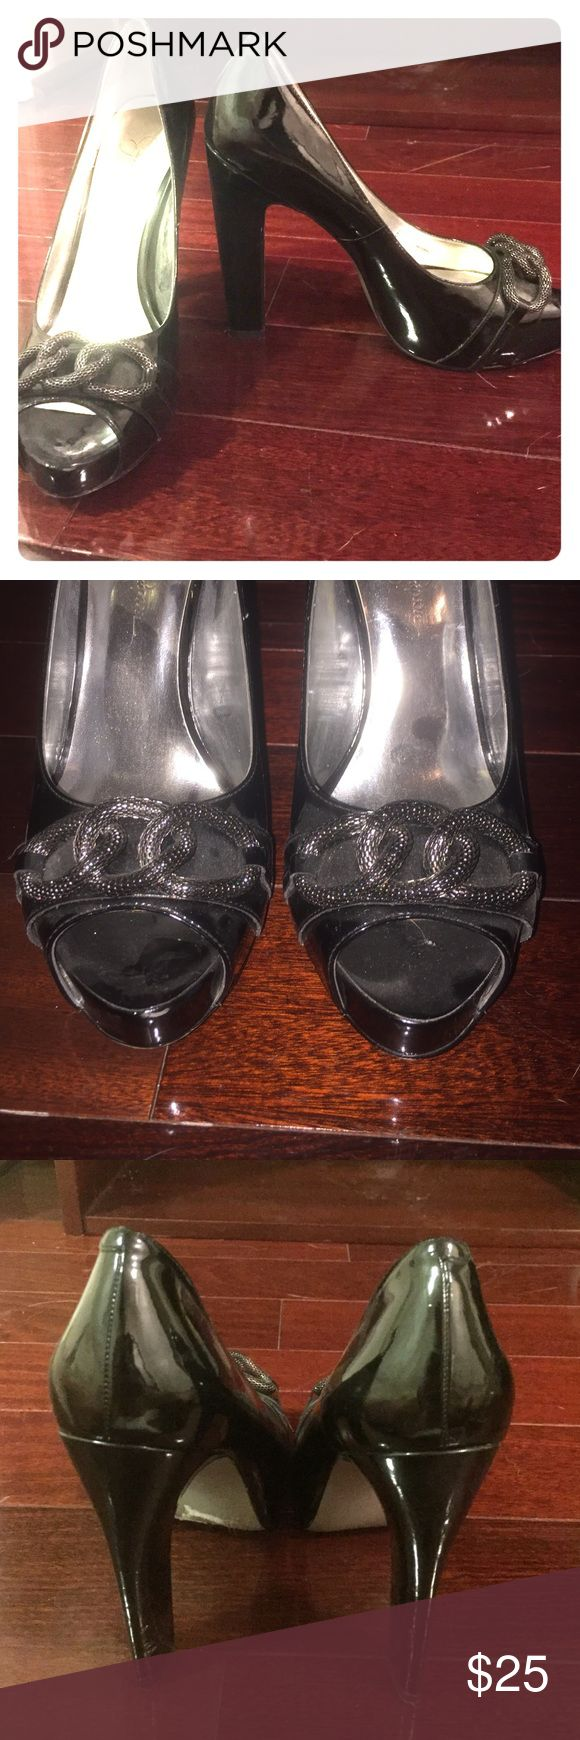 Jessica Simpson Black Heels Jessica Simpson Black Heels. Fun silver detail on toes. Opened toed. Only worn once.  Size: 8 Jessica Simpson Shoes Heels